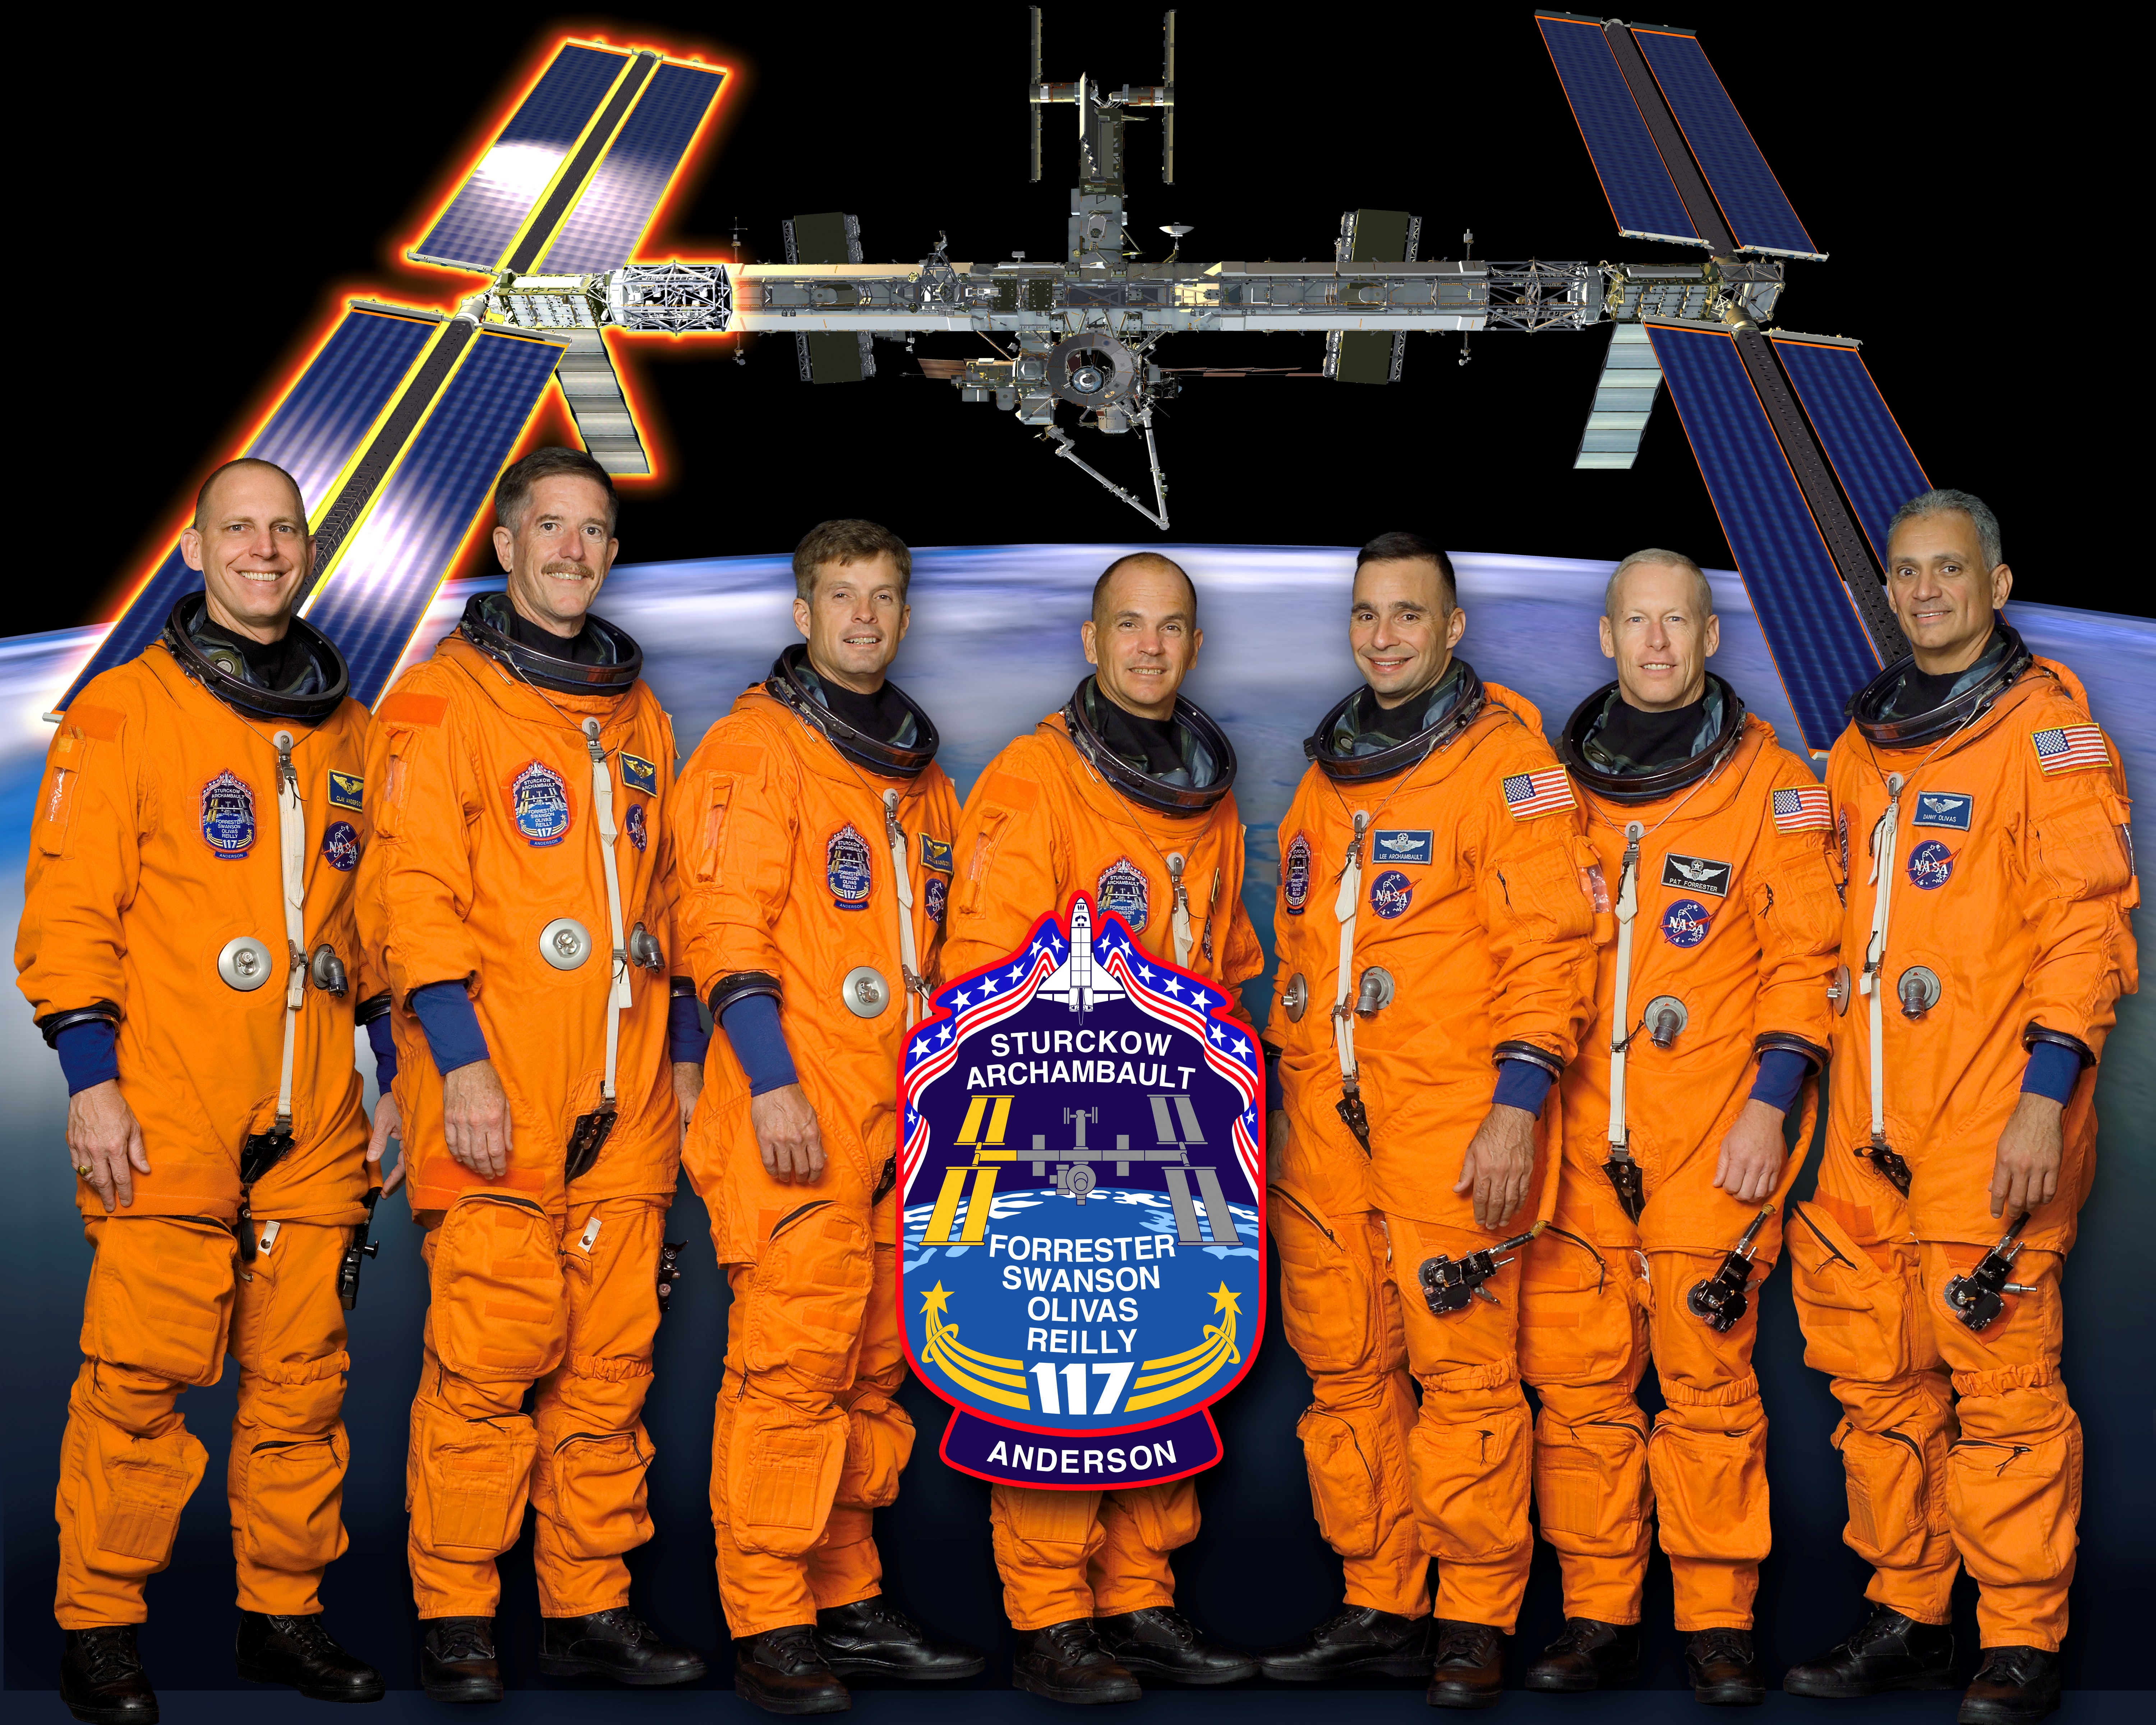 File:STS-117 new crew photo.jpg